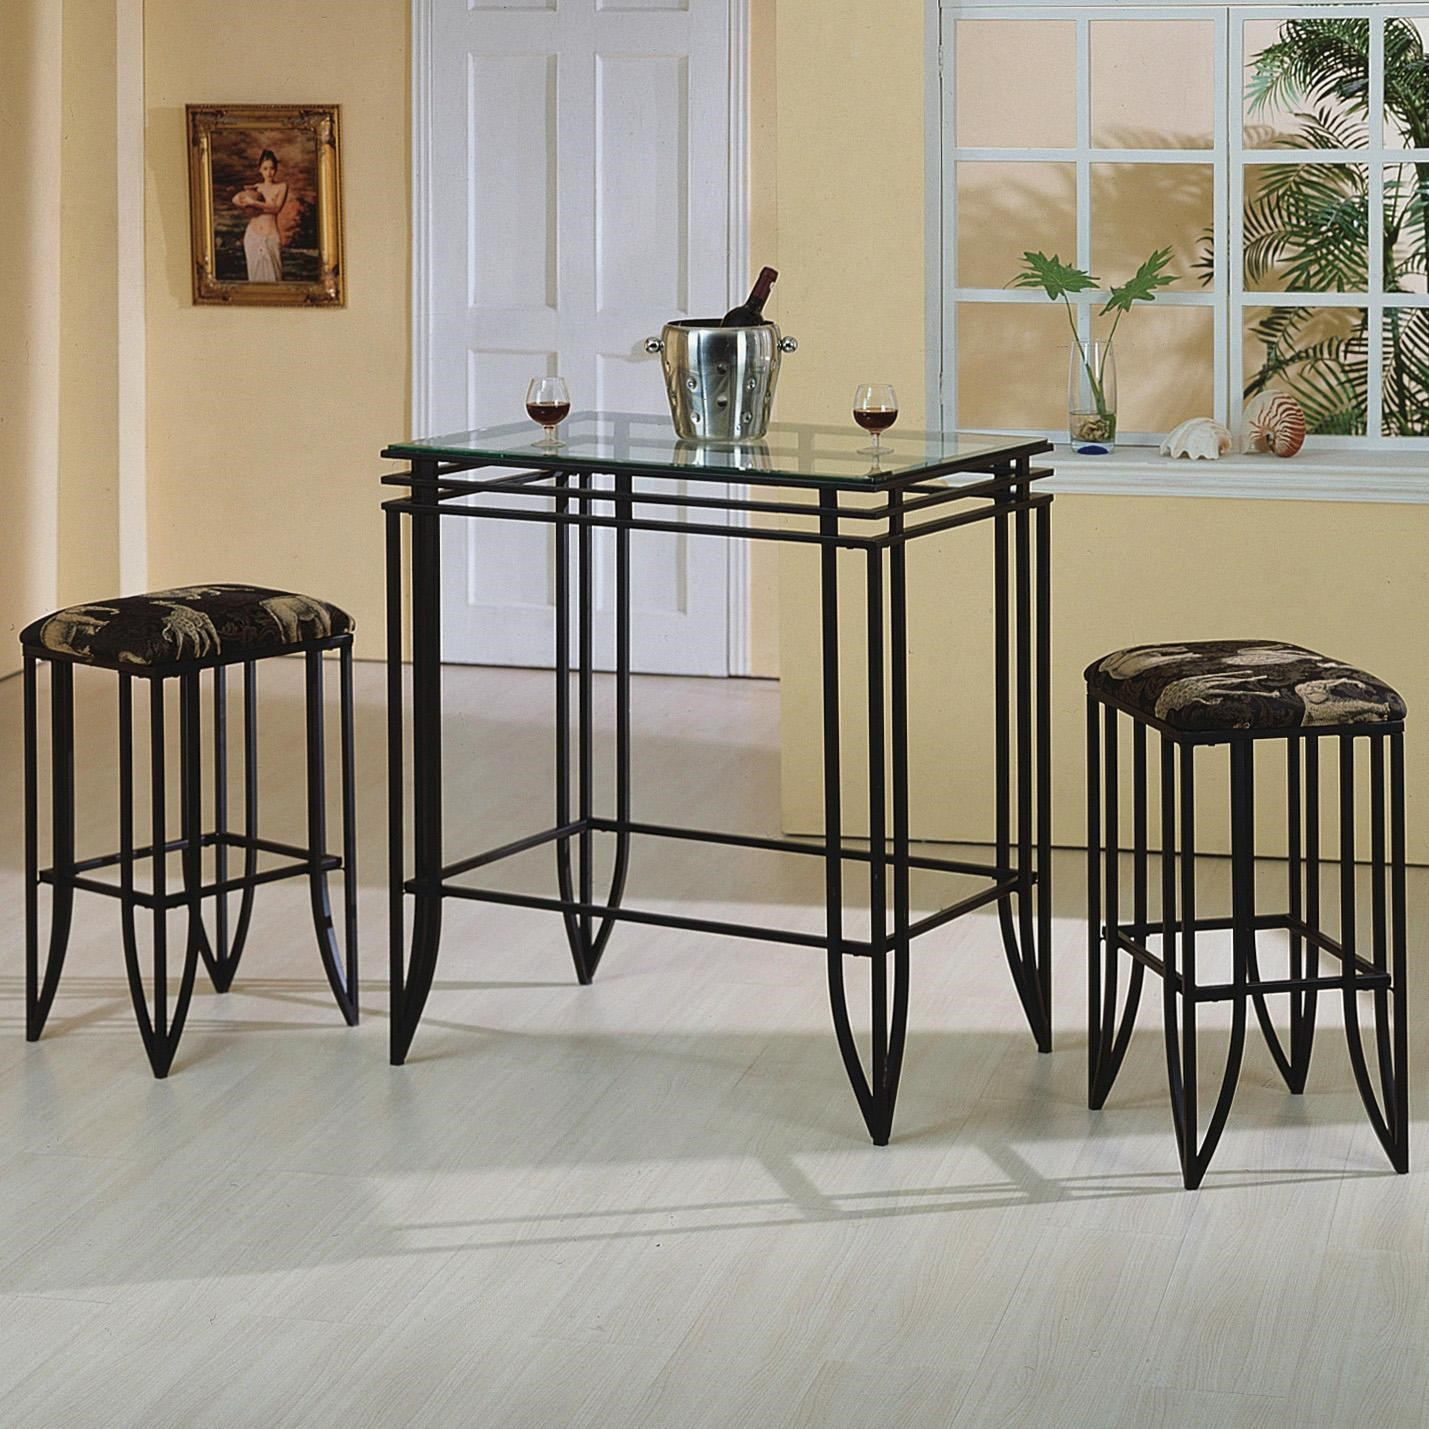 Matrix 3 Piece Glass Top Pub Table And Chairs Set By Crown Mark